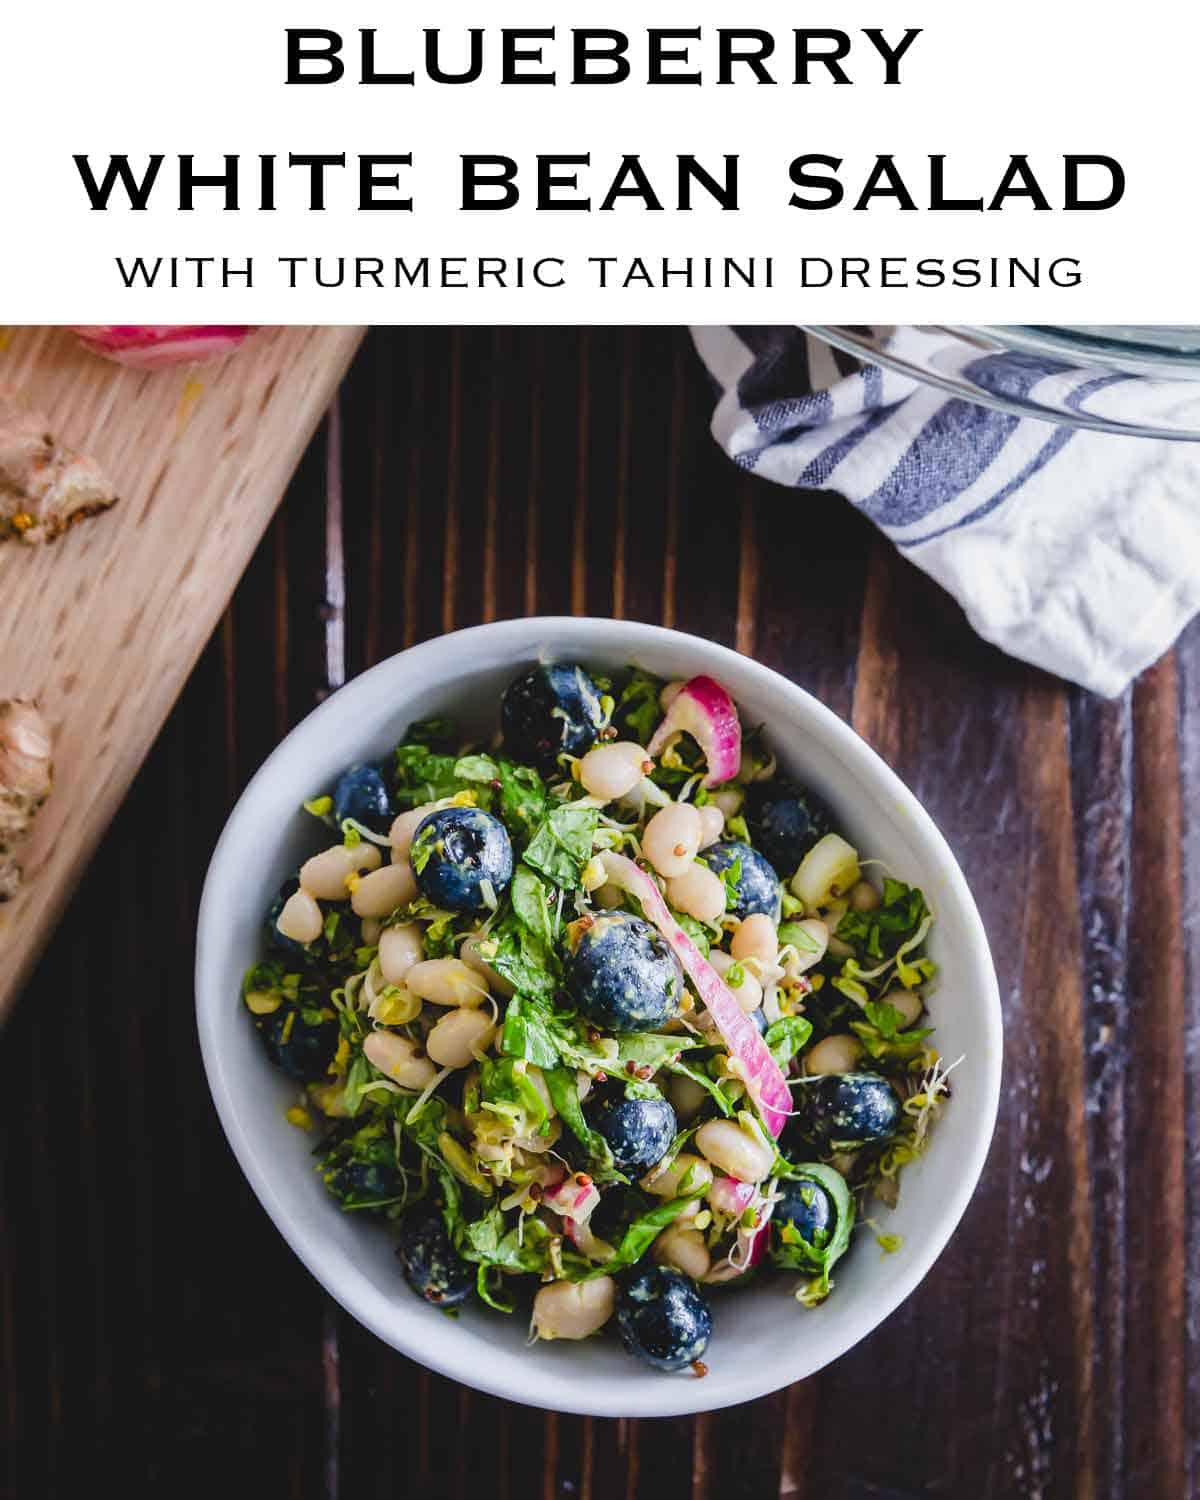 White bean and blueberry salad with tahini turmeric dressing - A nutritious and anti-inflammatory salad that's great as a side dish or a plant-based meal in itself!